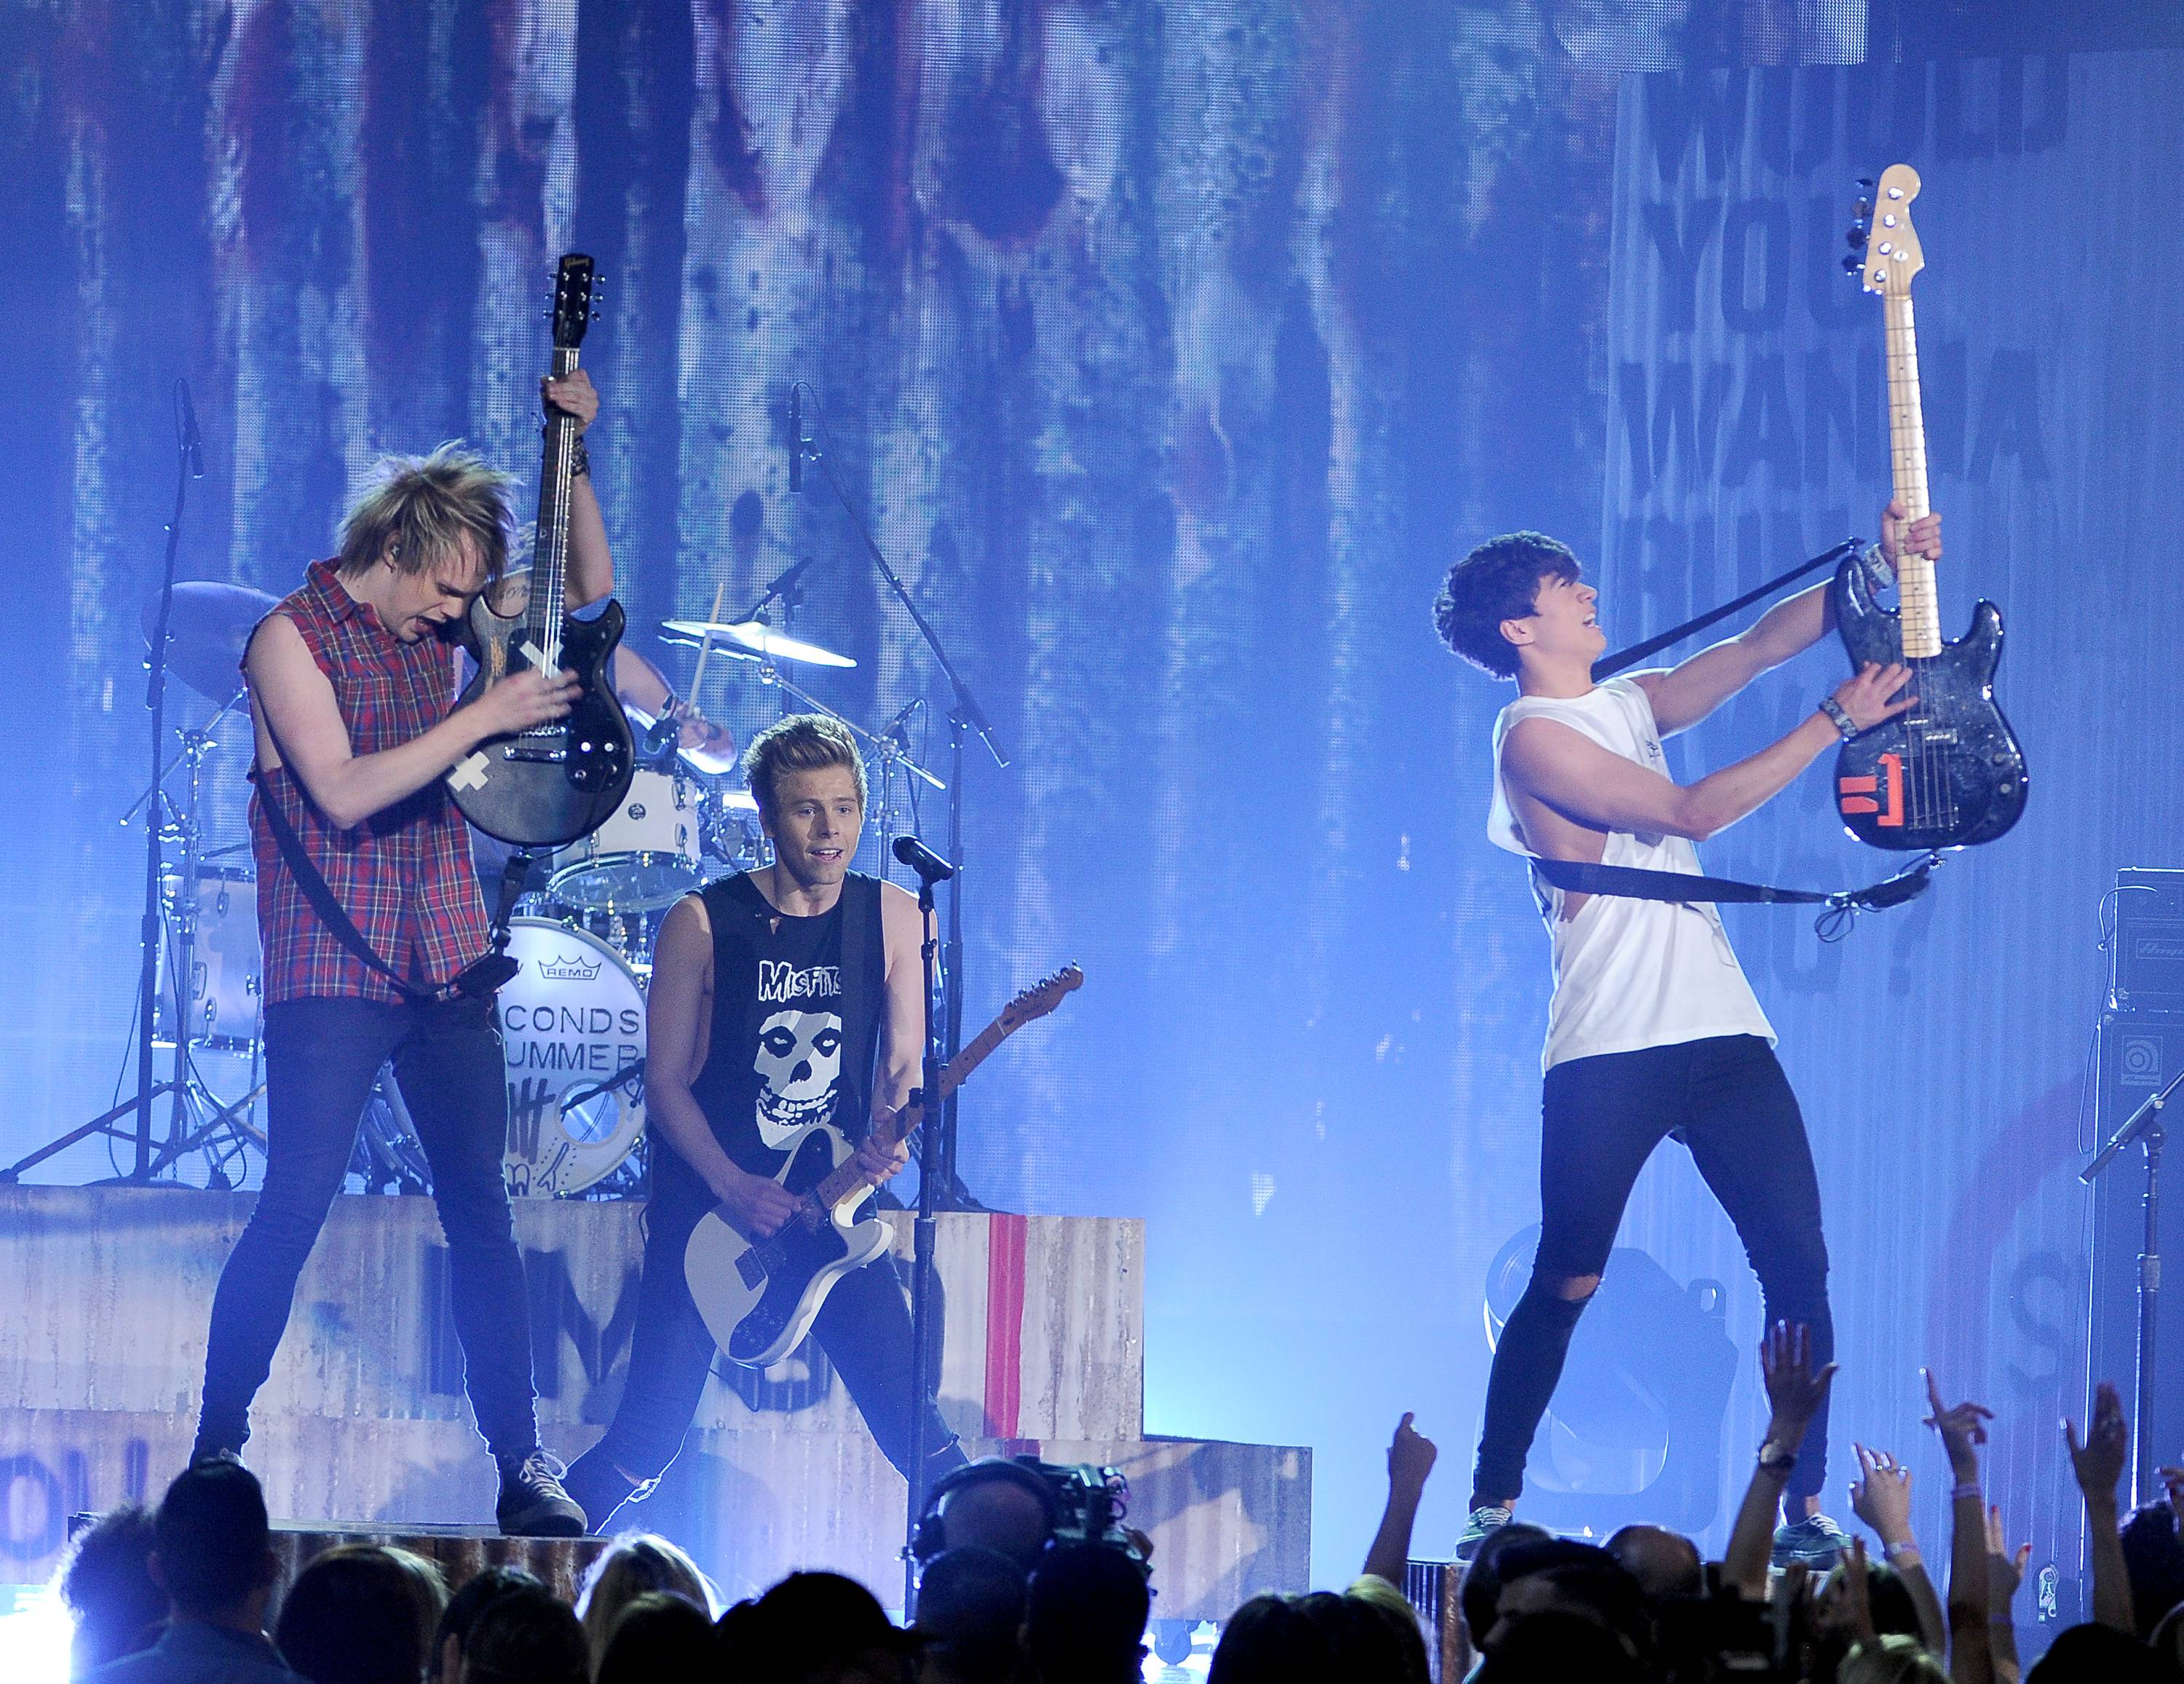 5 Seconds of Summer, One Direction to rock Soldier Field Aug. 29-30